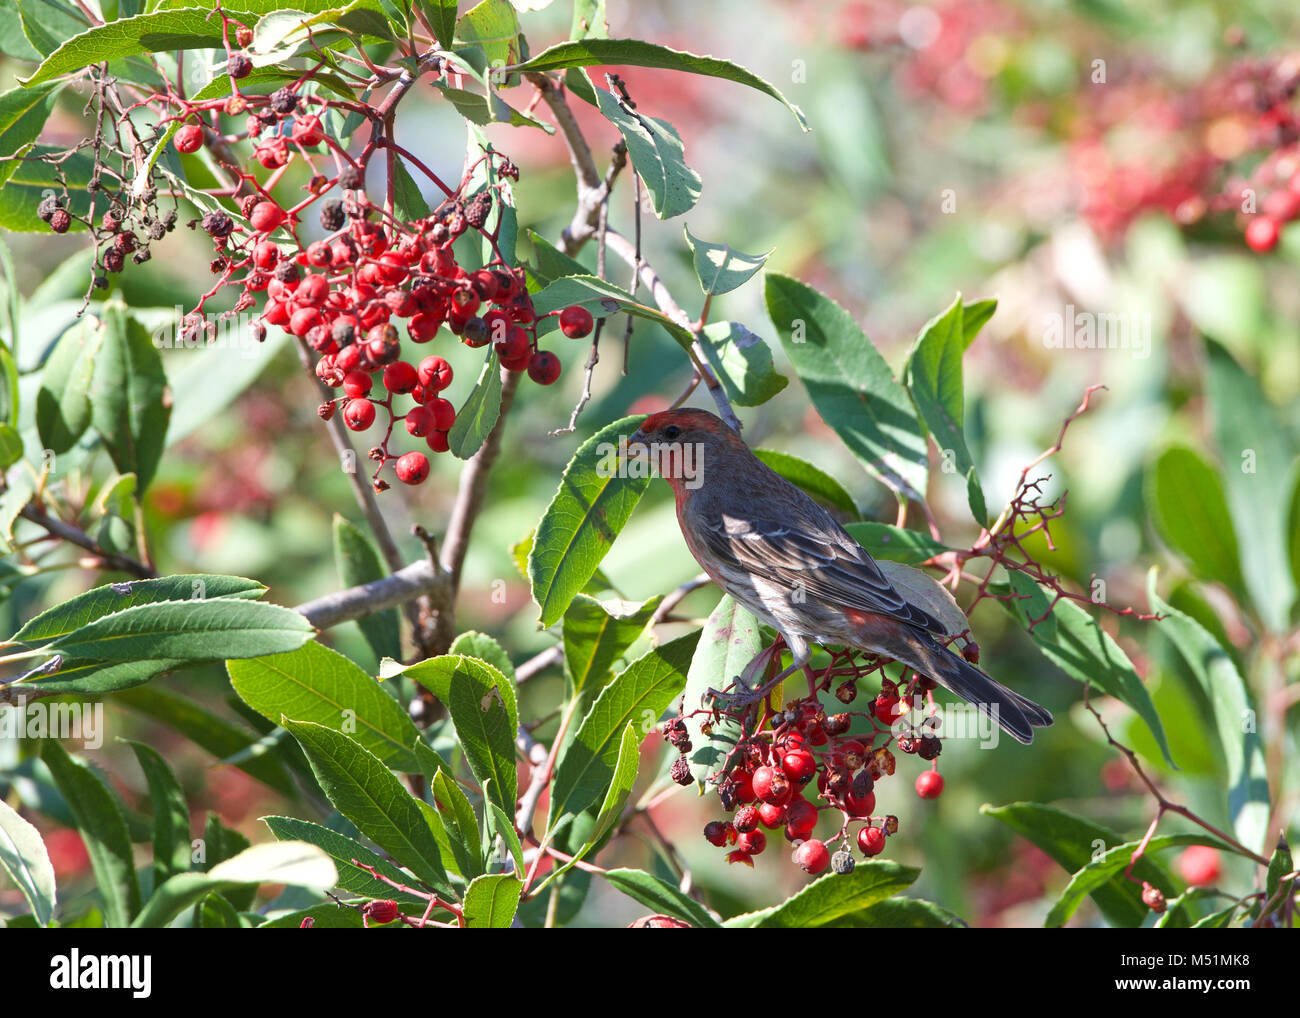 a male house finch in bushes eating red berries. They forage on the ground or in vegetation and primarily eat grains, Stock Photo